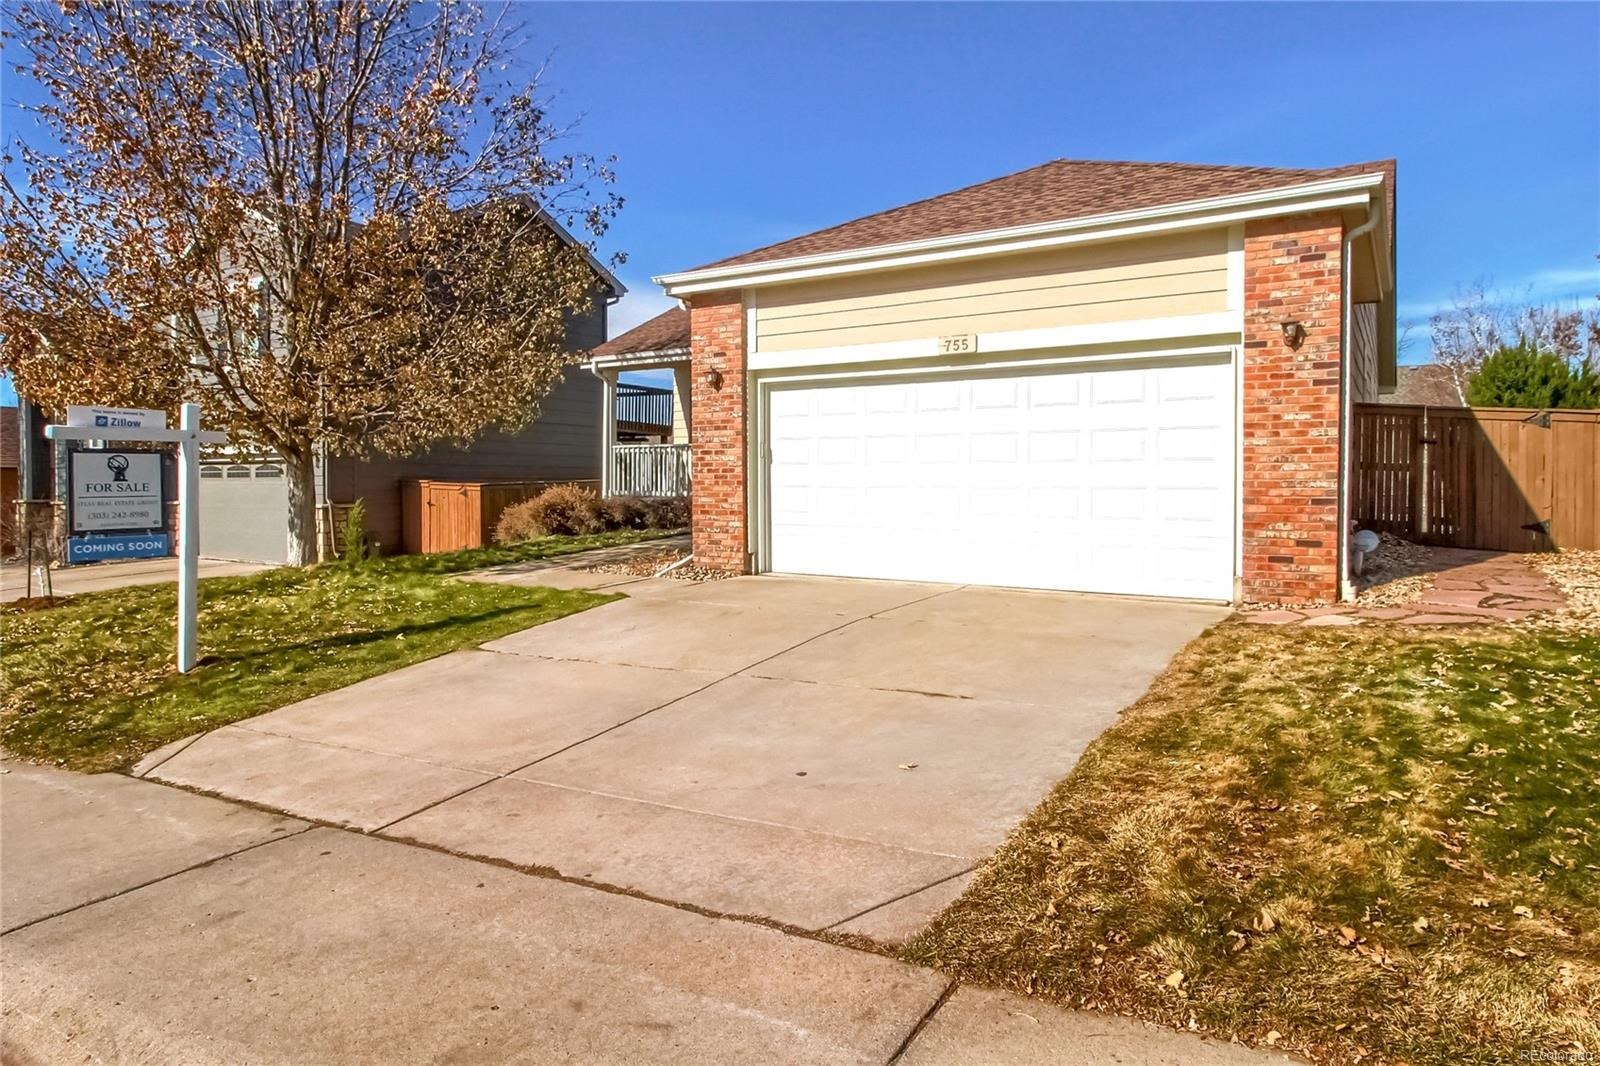 MLS# 9265931 - 2 - 755 Poppy Place, Highlands Ranch, CO 80129